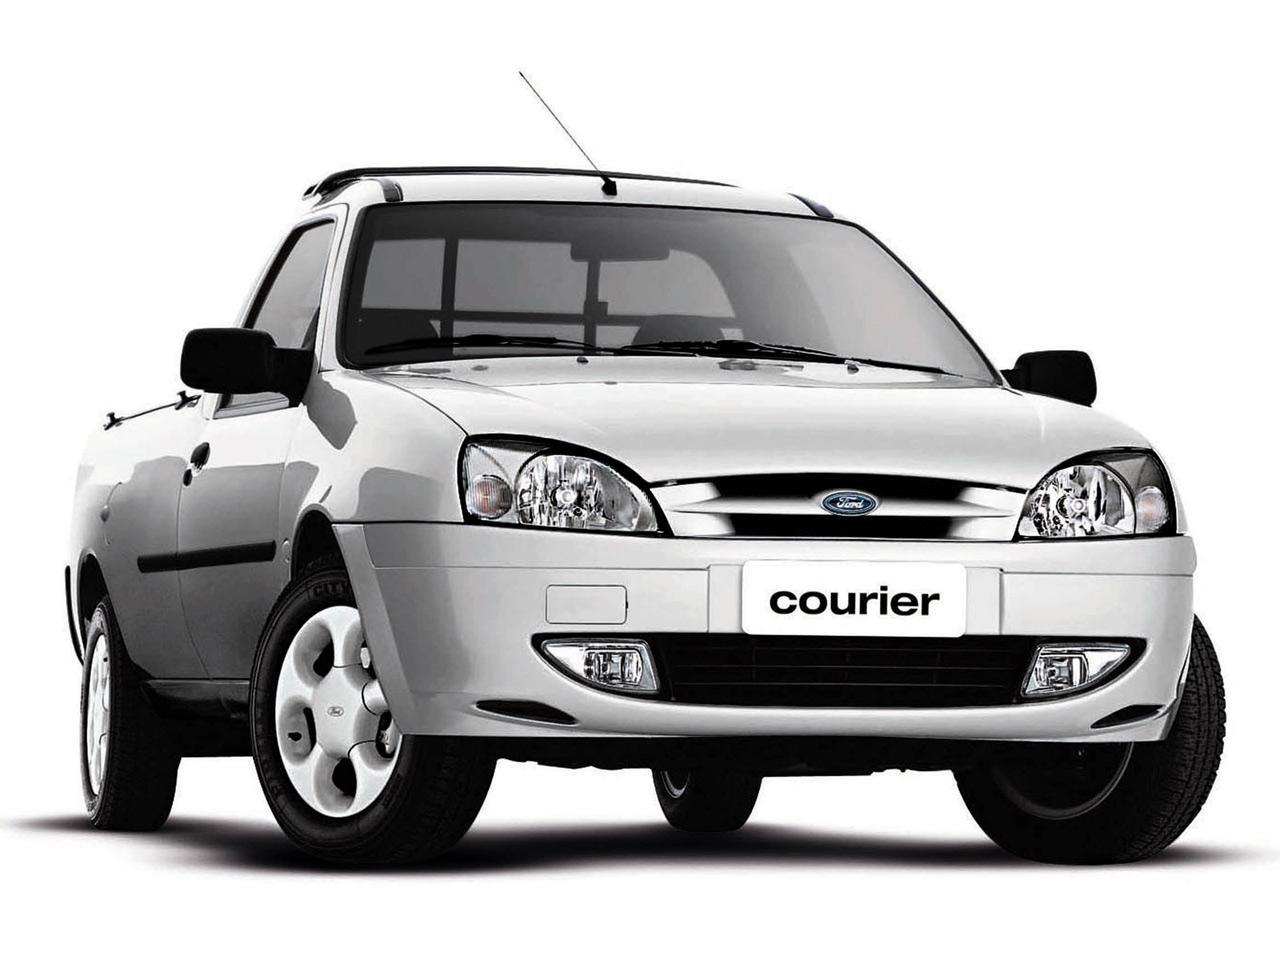 Ford courier 2010 photo - 3